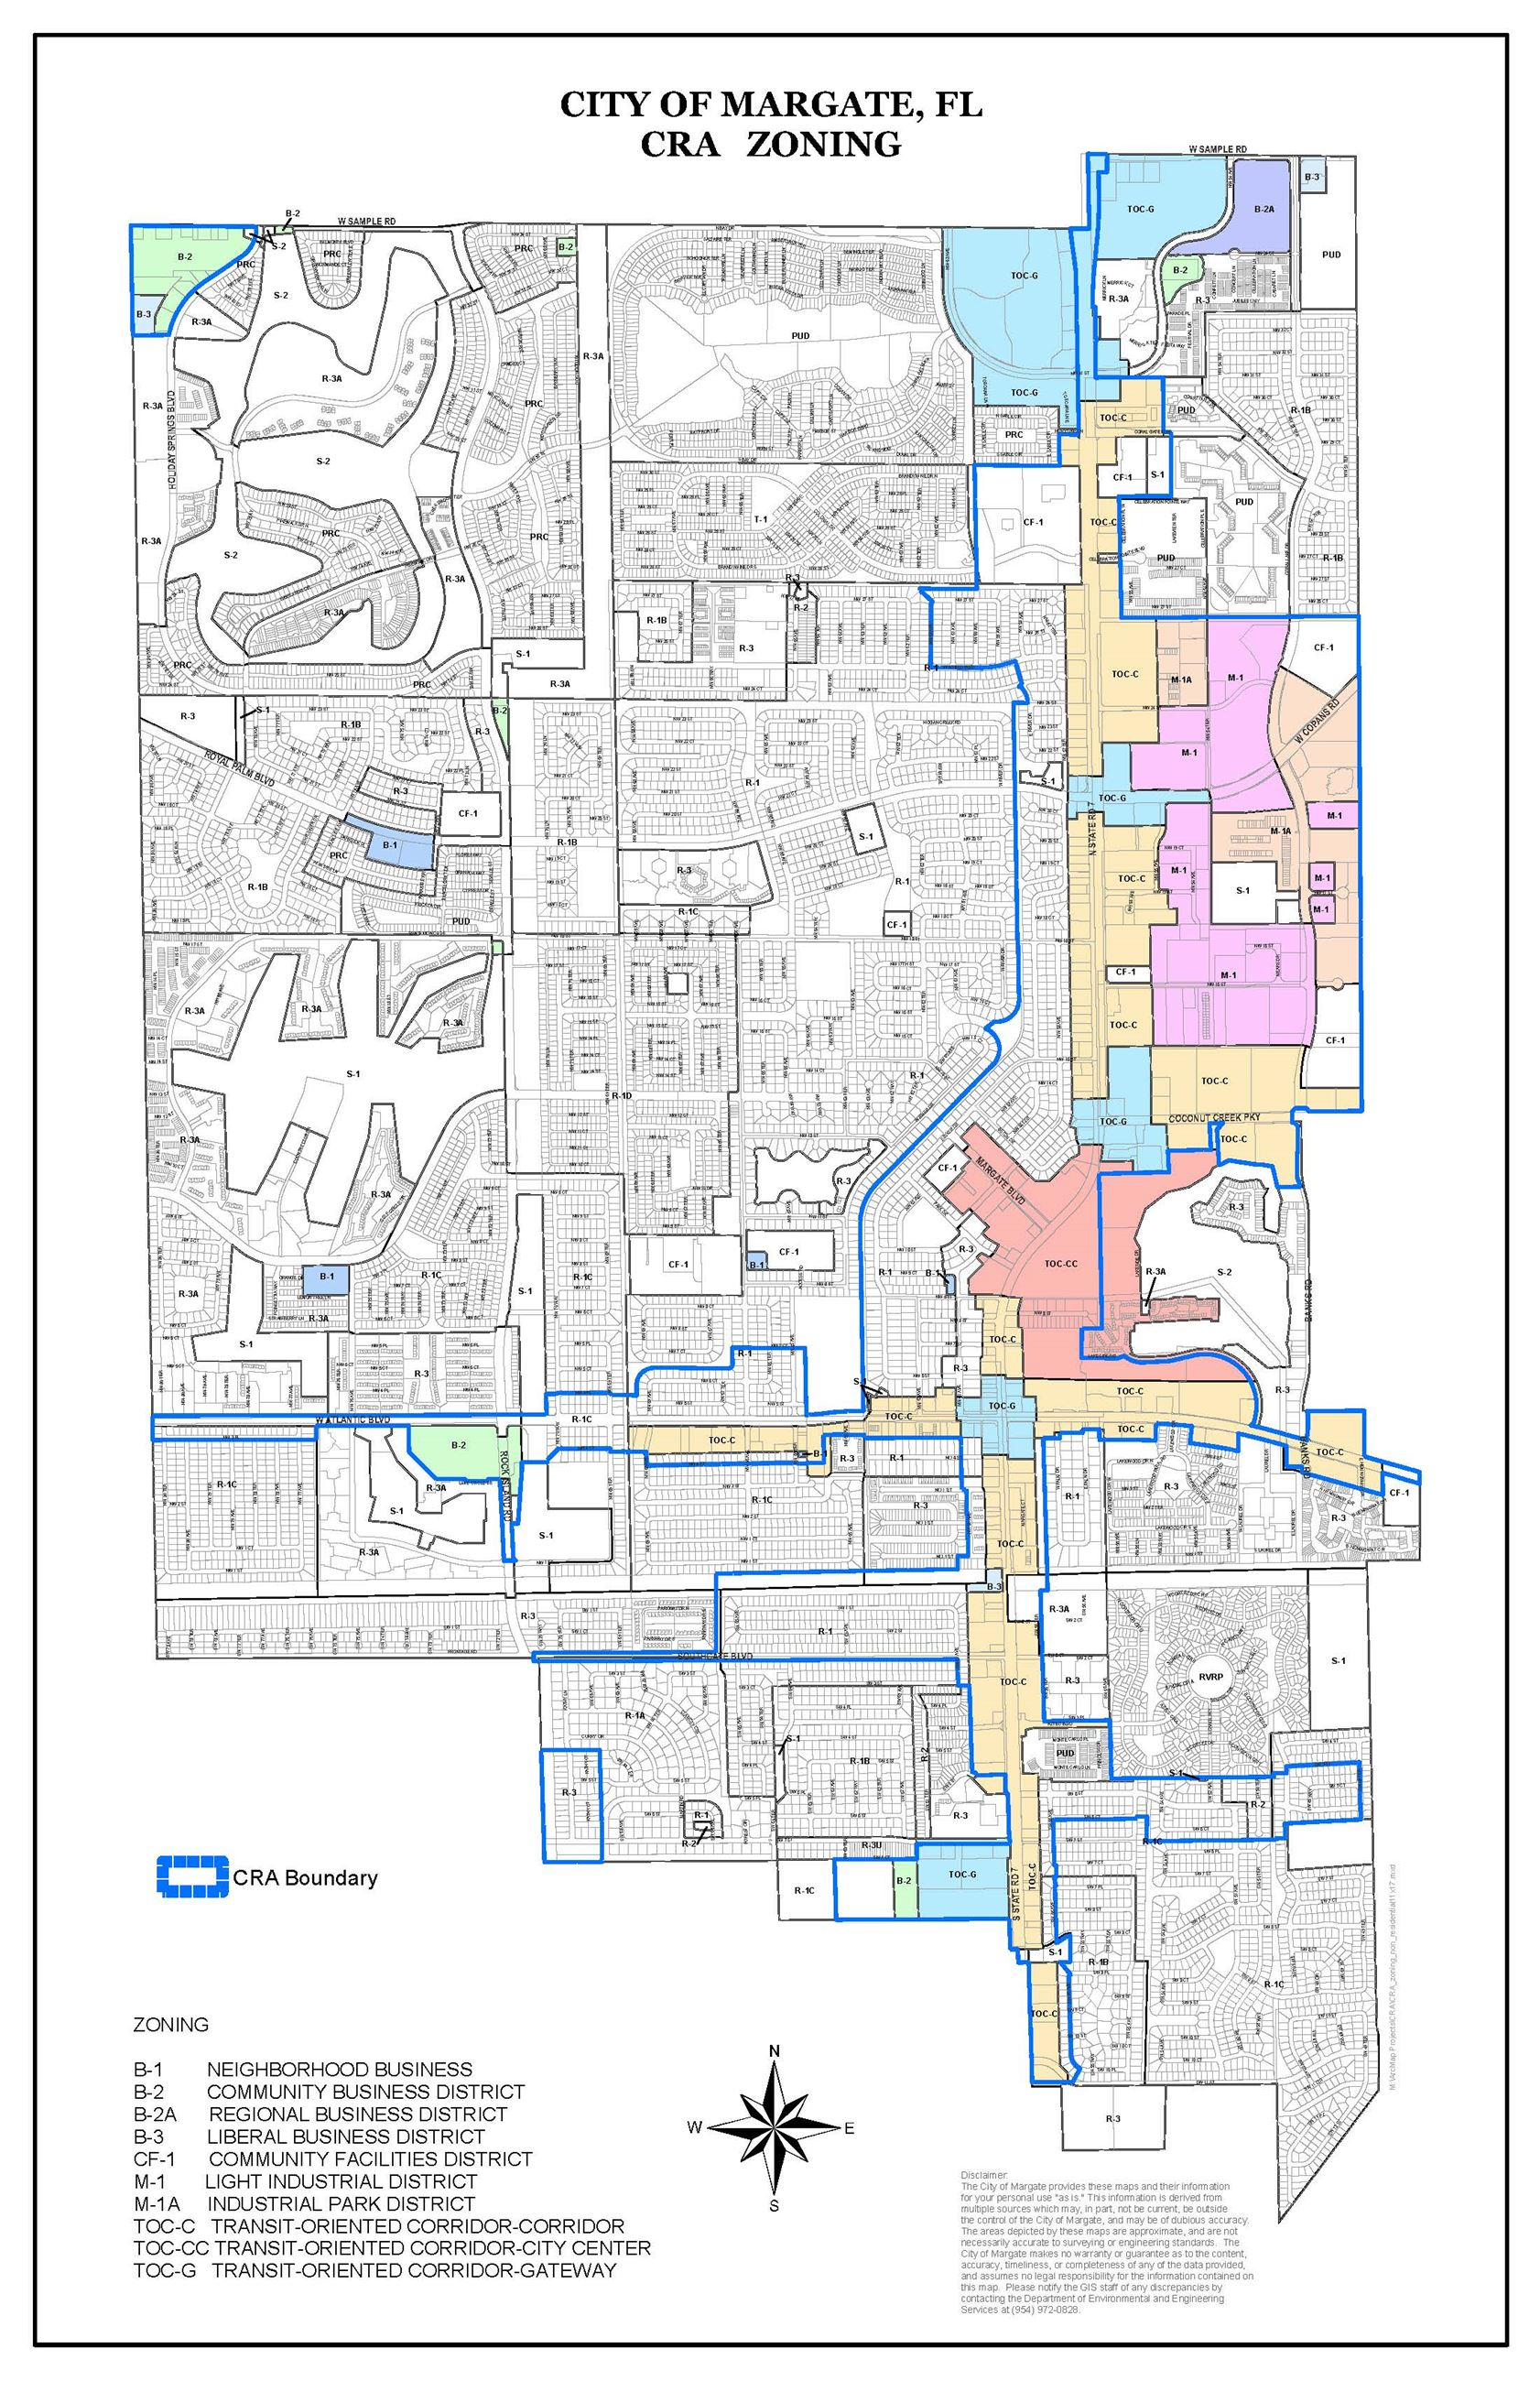 CRA zoning map non-residential Opens in new window